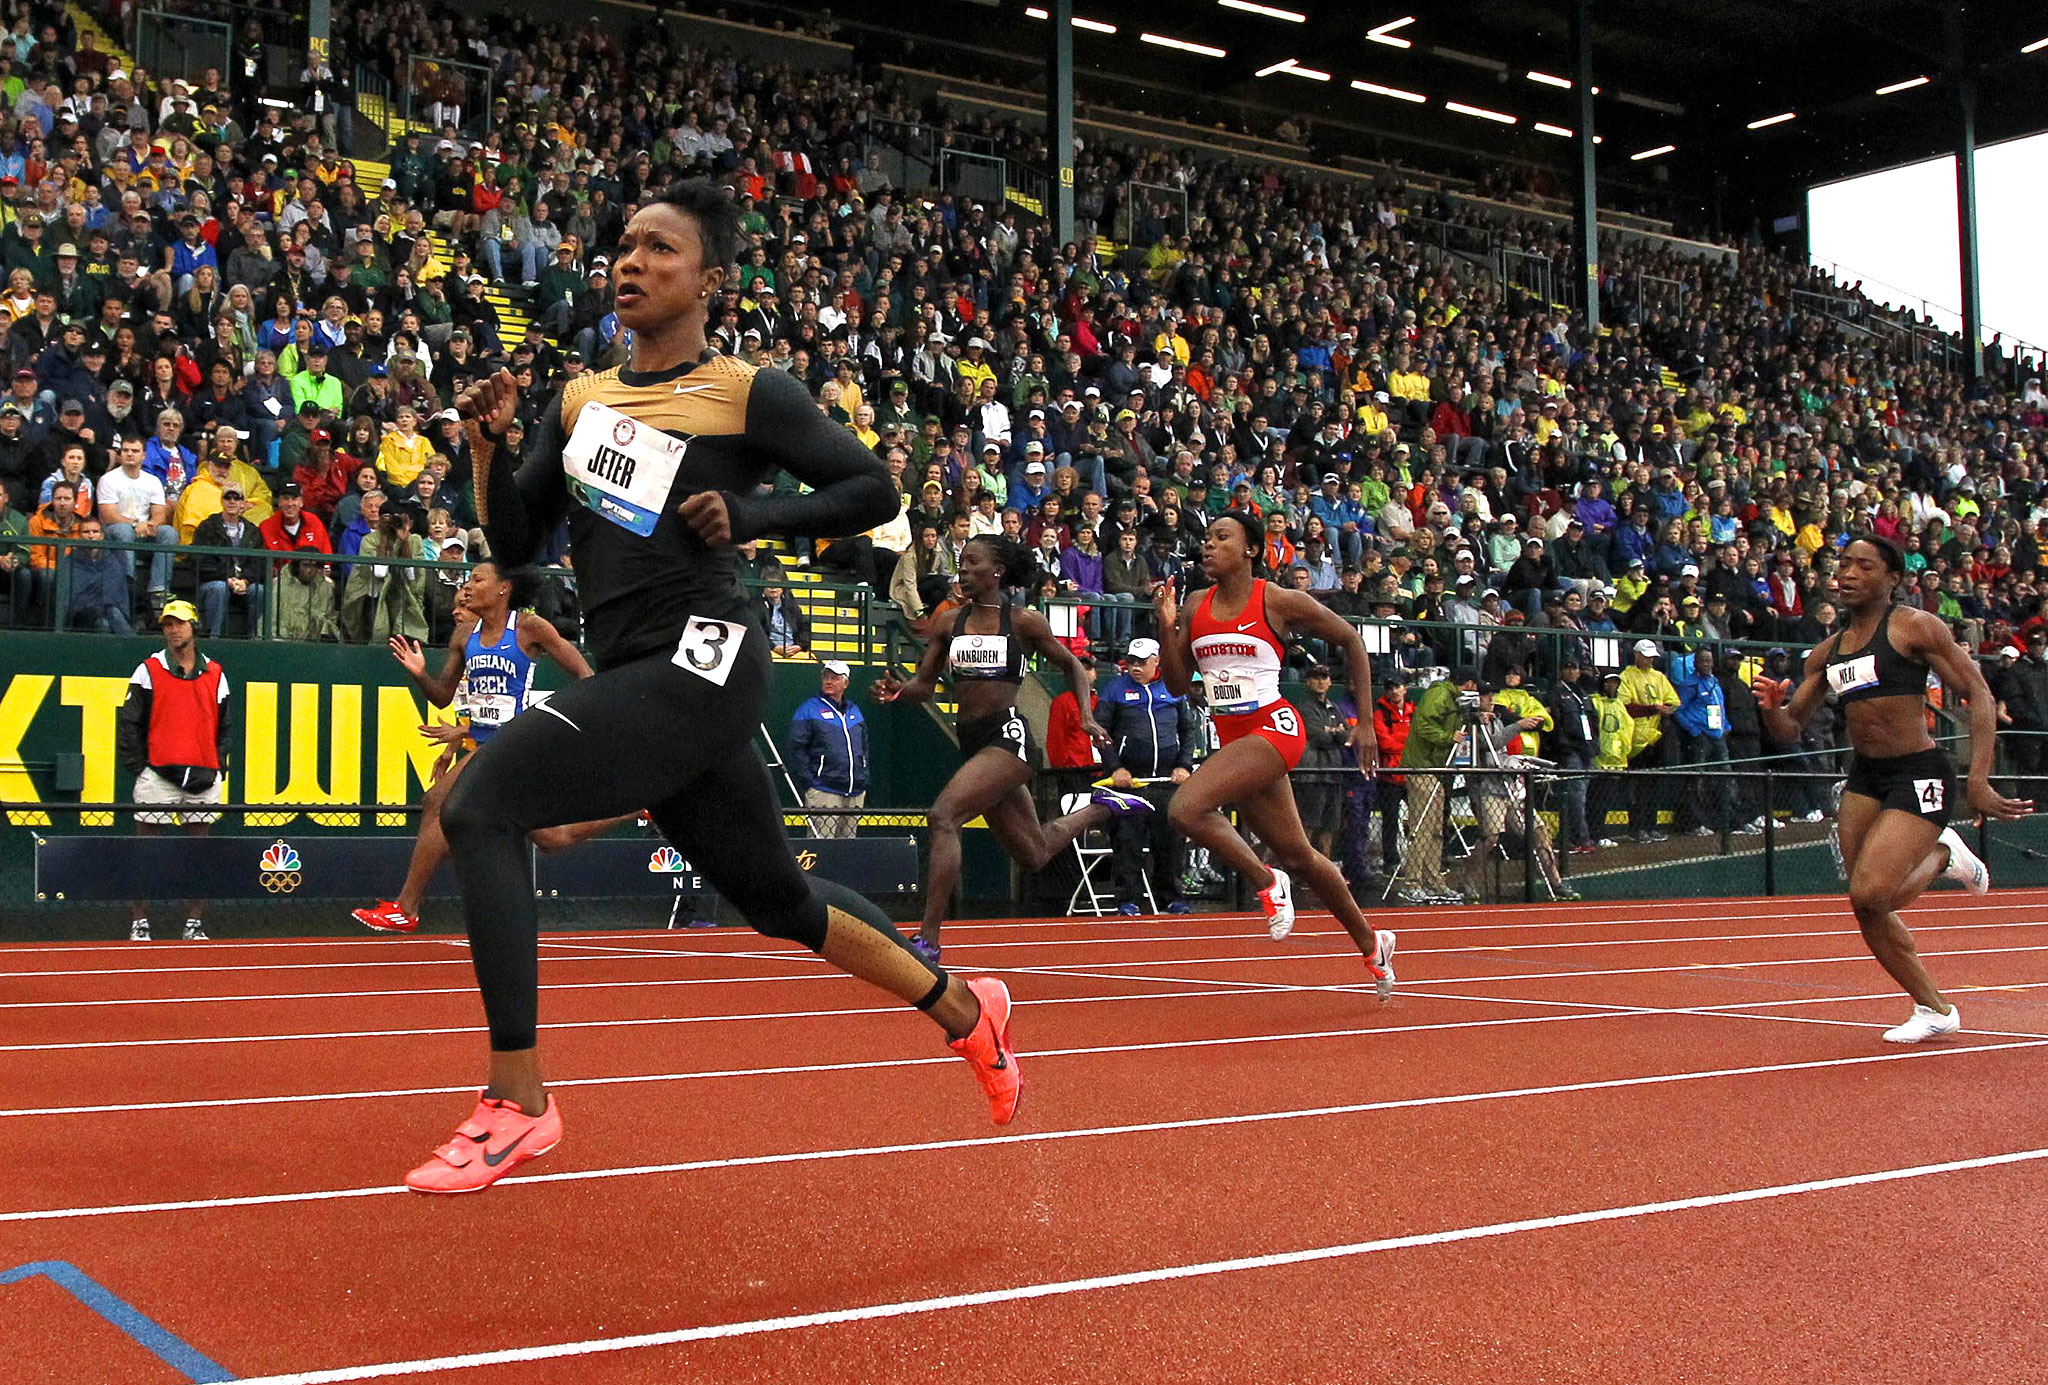 Carmelita Jeter qualified for the London Olympics in 2012 by finishing first in the 100 meters and second in the 200 meters at the U.S. Olympic trials.